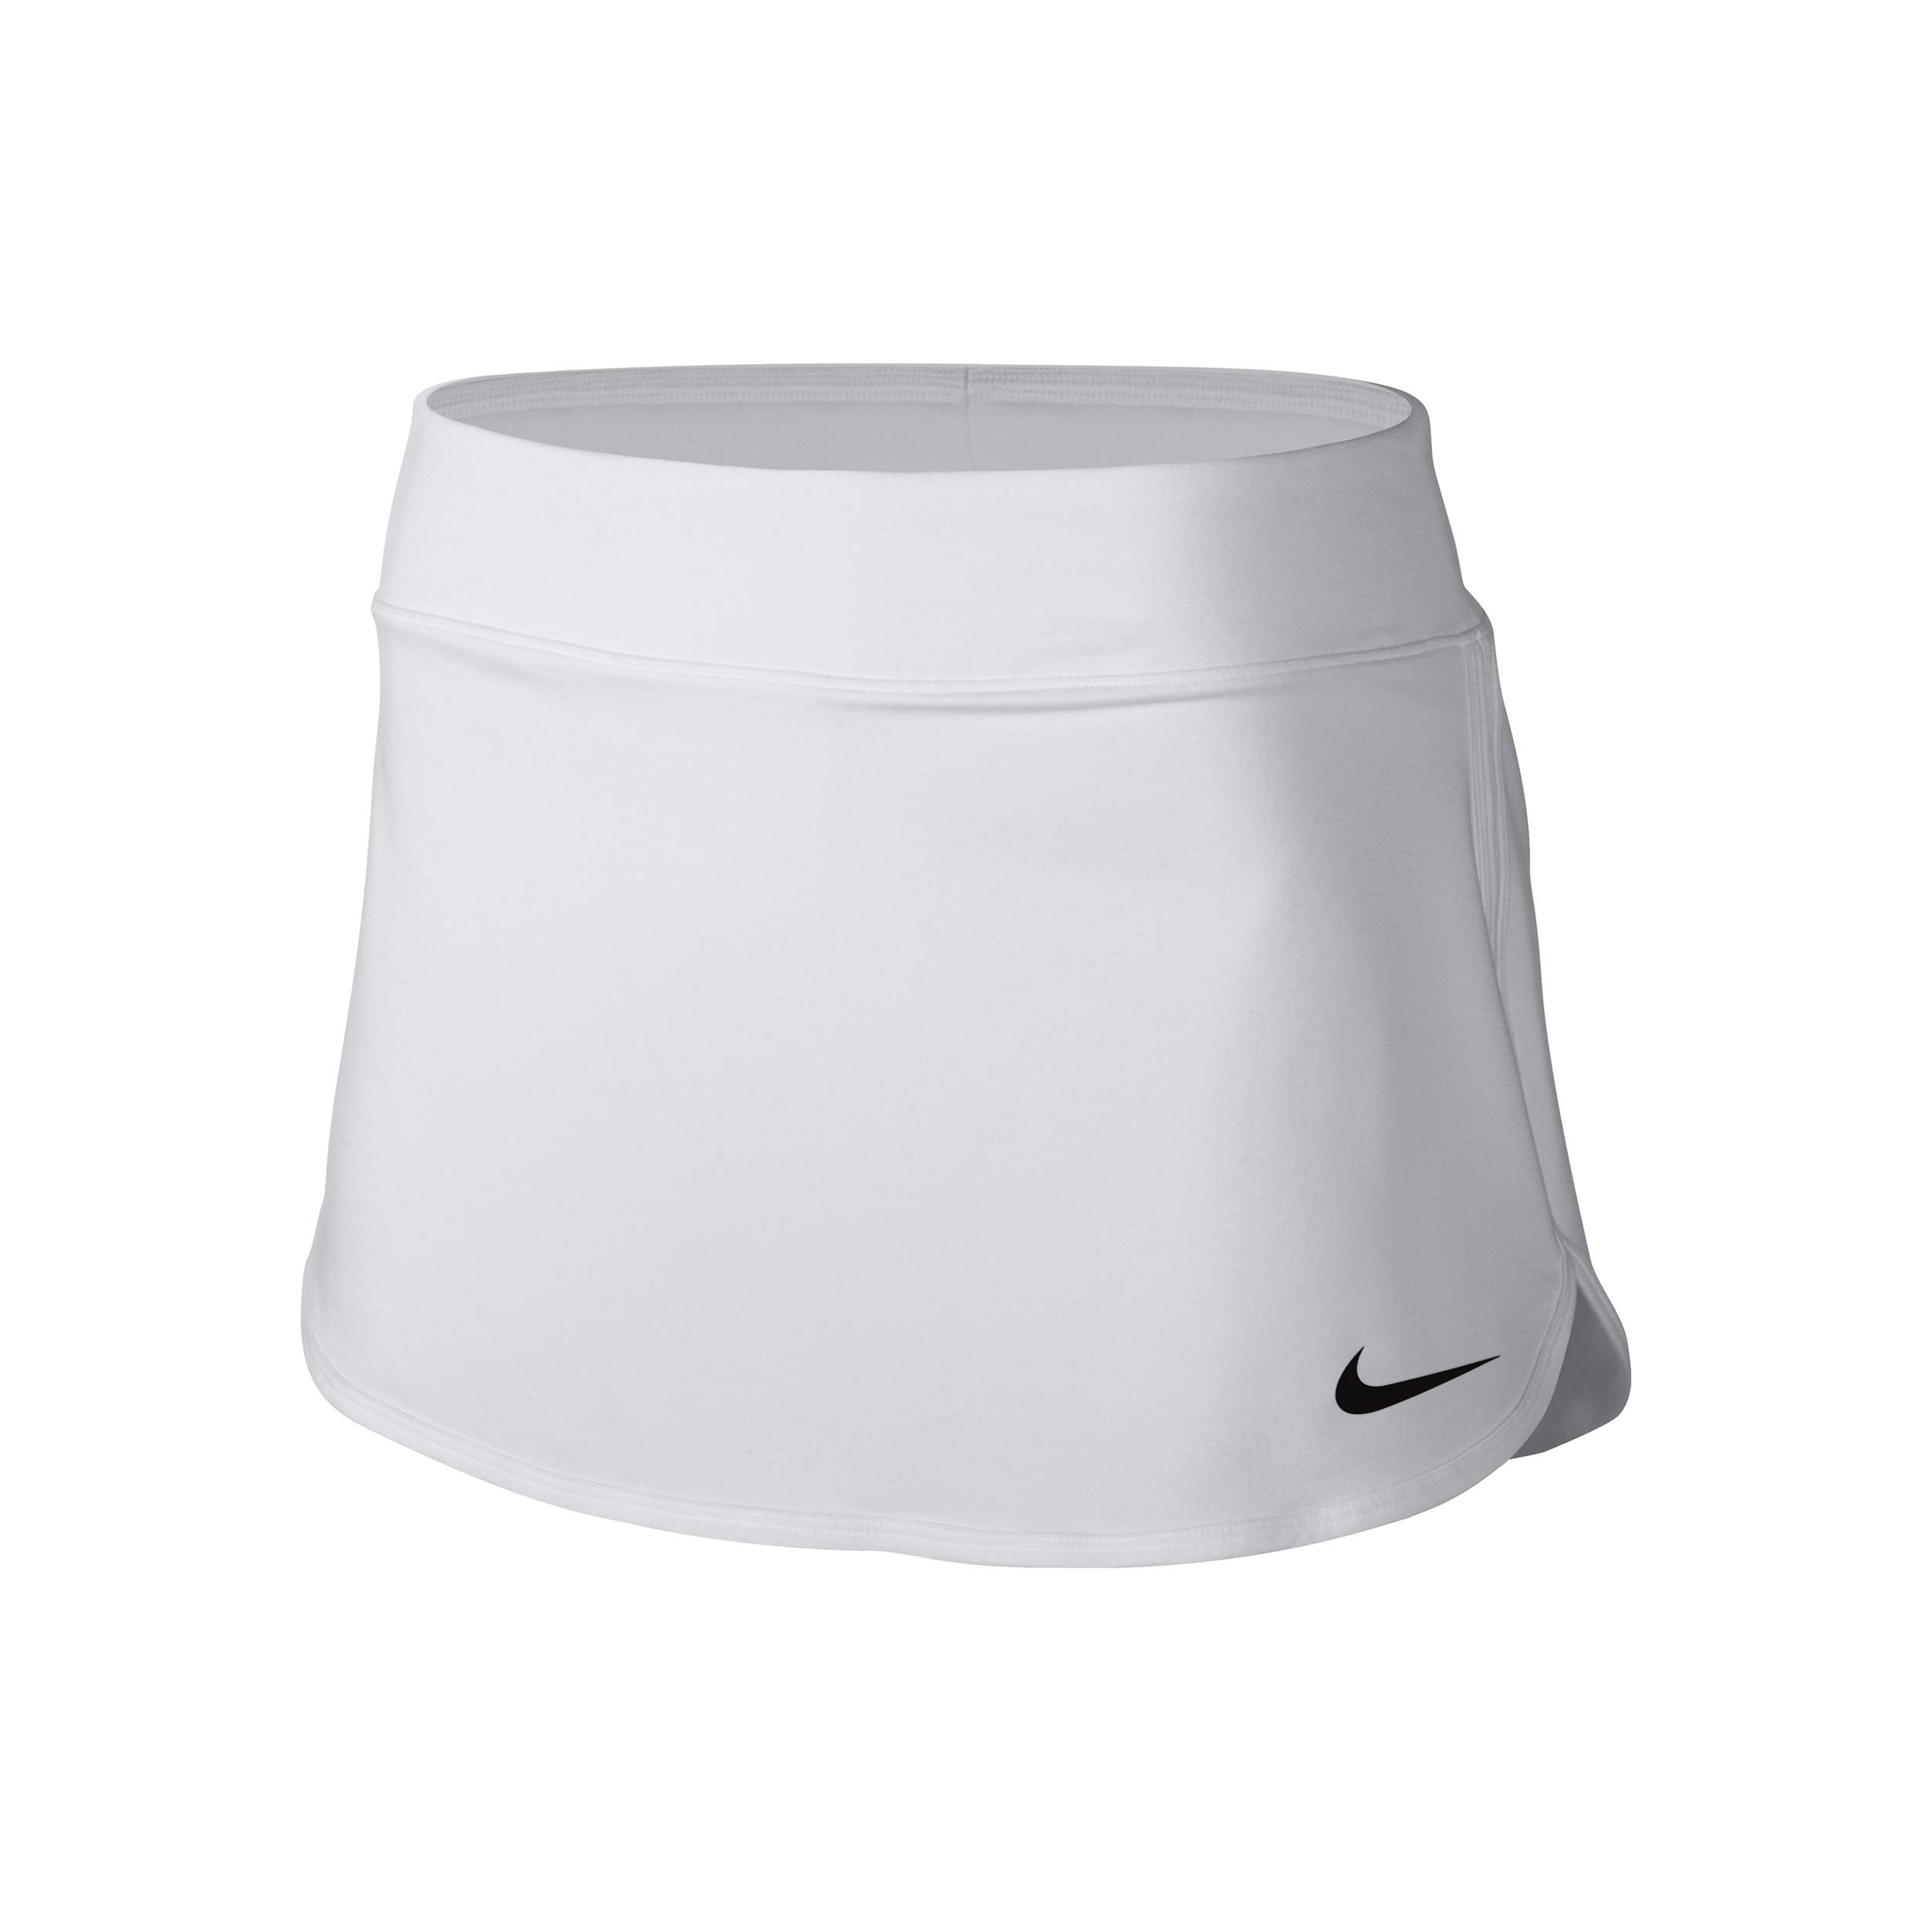 Nike Women's Pure Skirt, White/Black SM by Nike (Image #1)